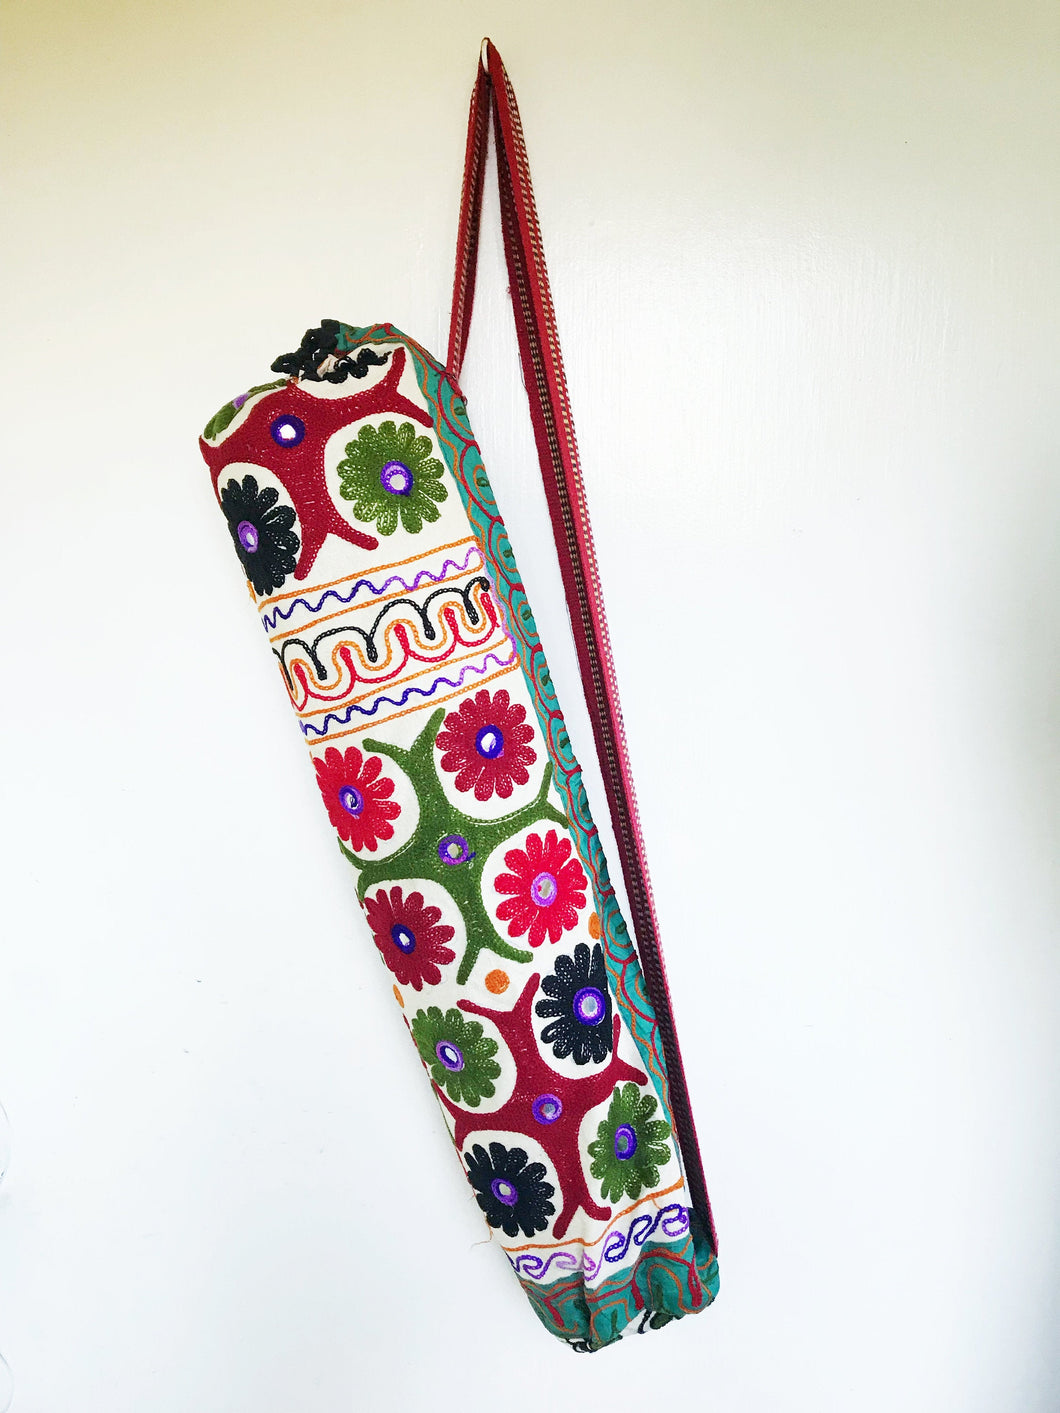 Handmade Indian Flower Yoga Mat Bag Embroidered Vintage Boho Colorful Mandala